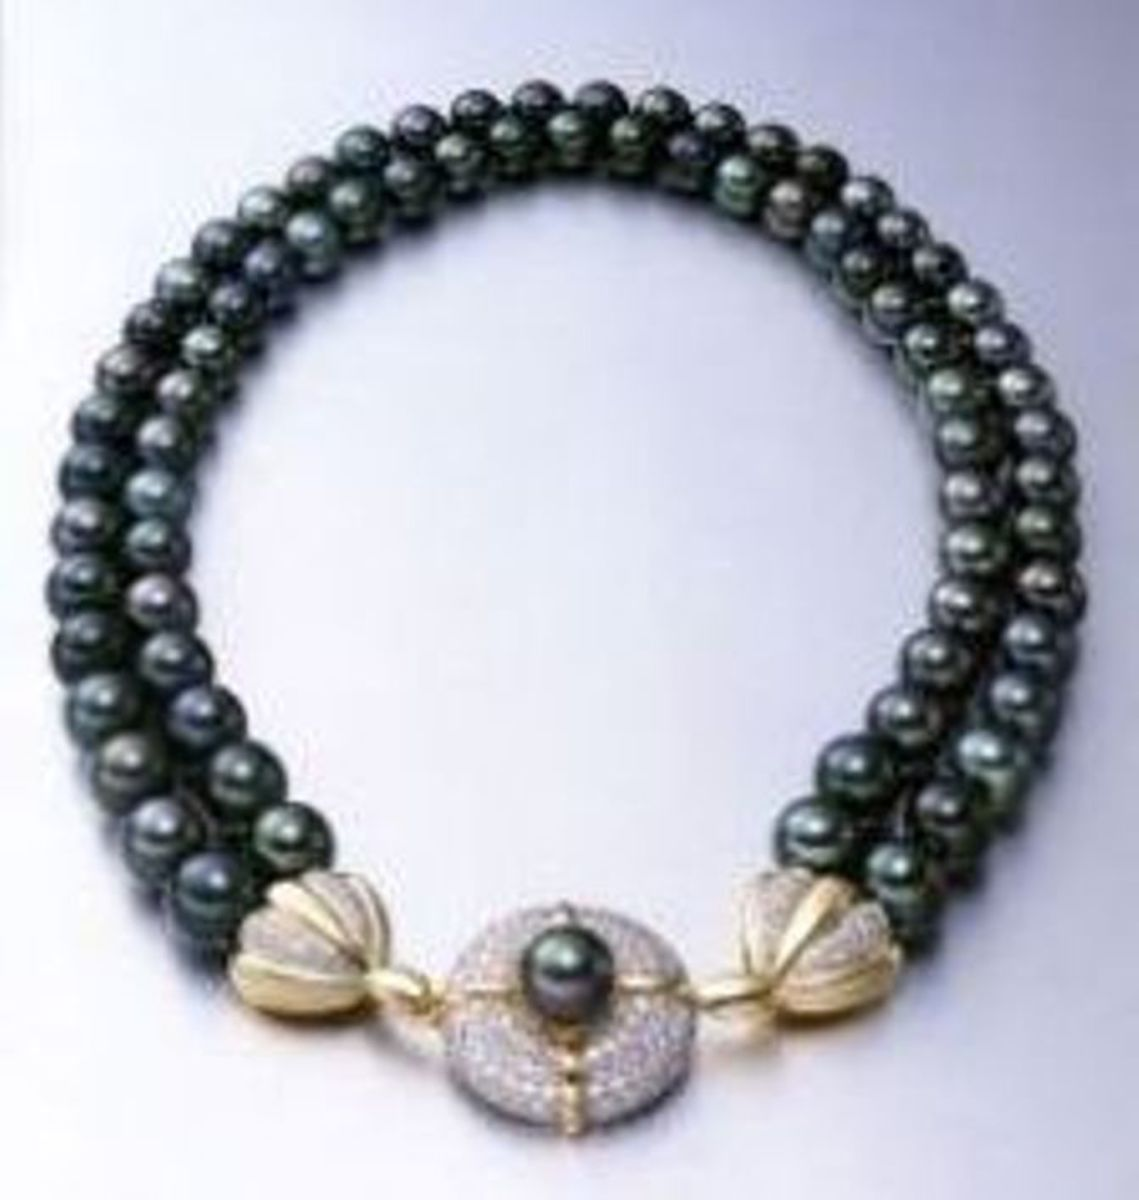 Birk's Black Tahitian double row cultured pearl necklace